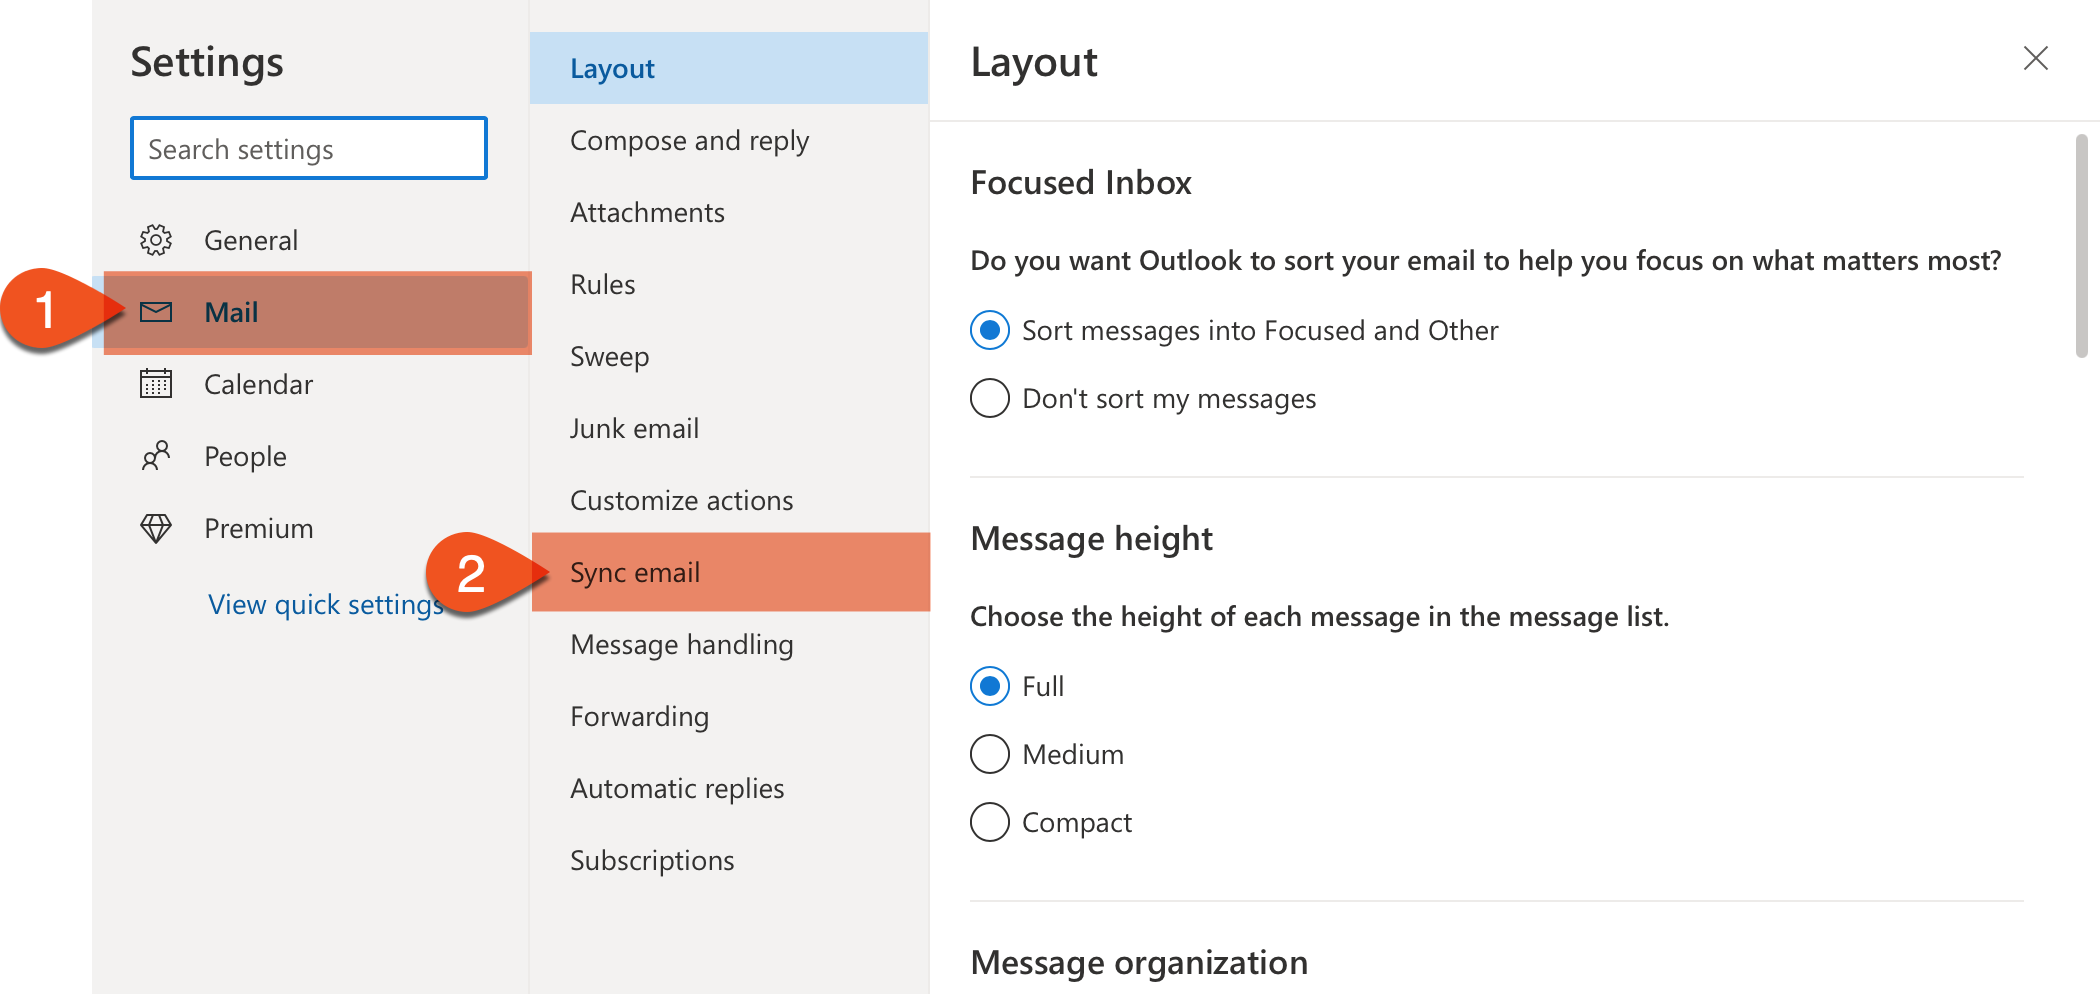 mail and sync mail image